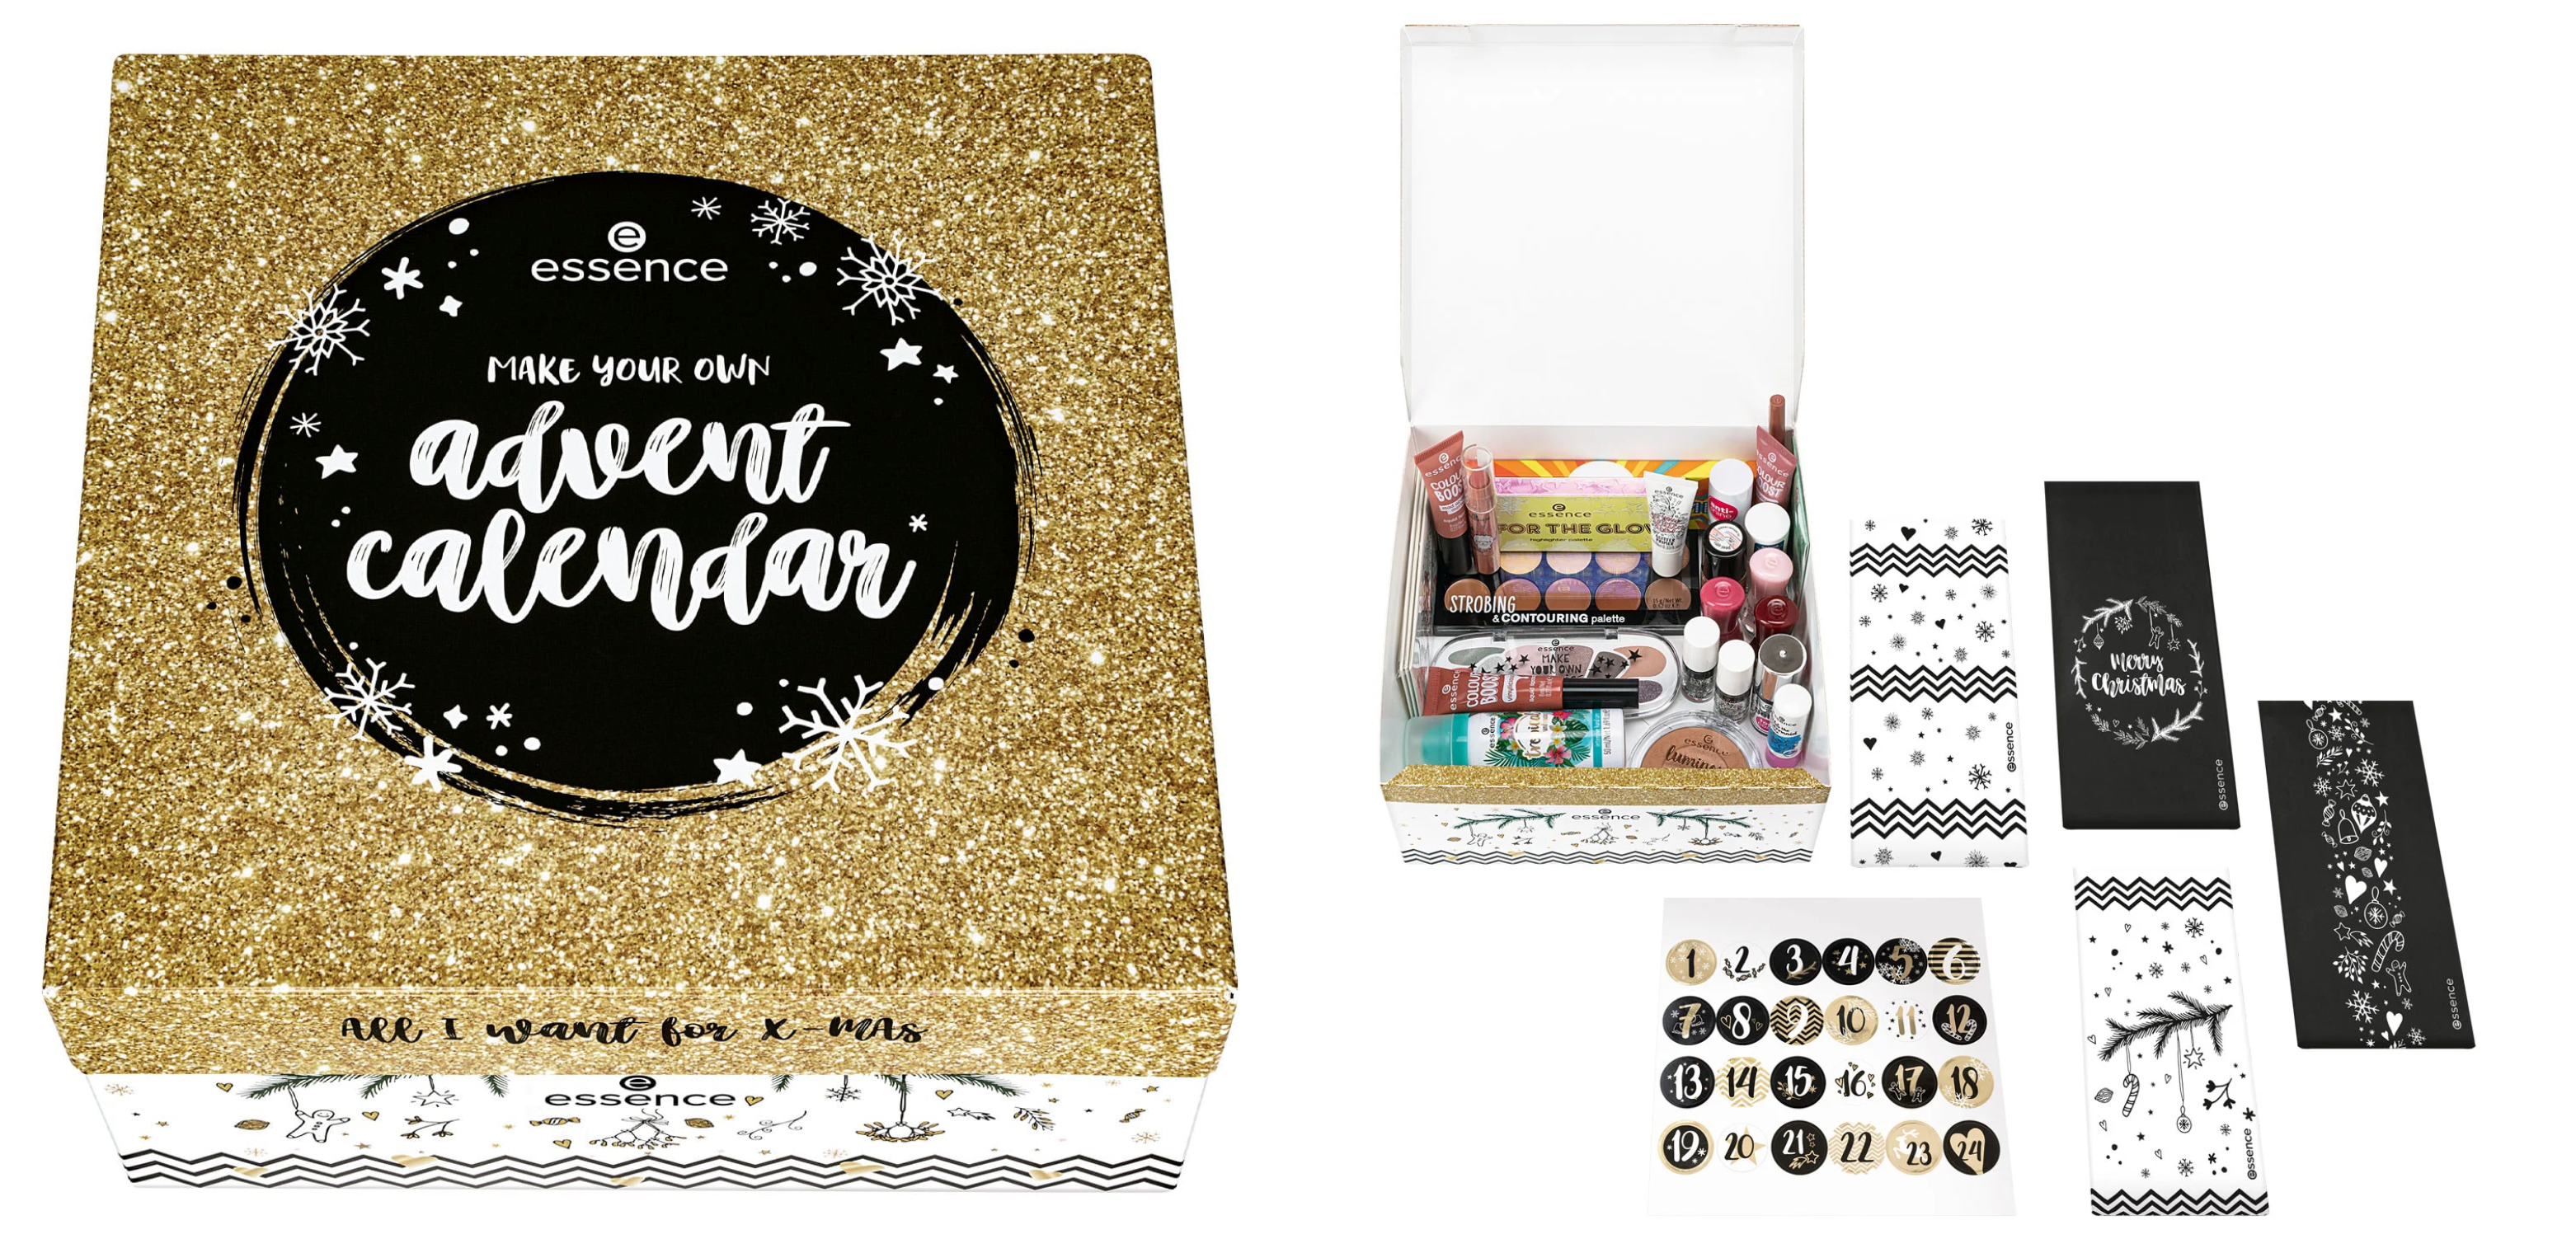 Essence make your own advent calendar 2019